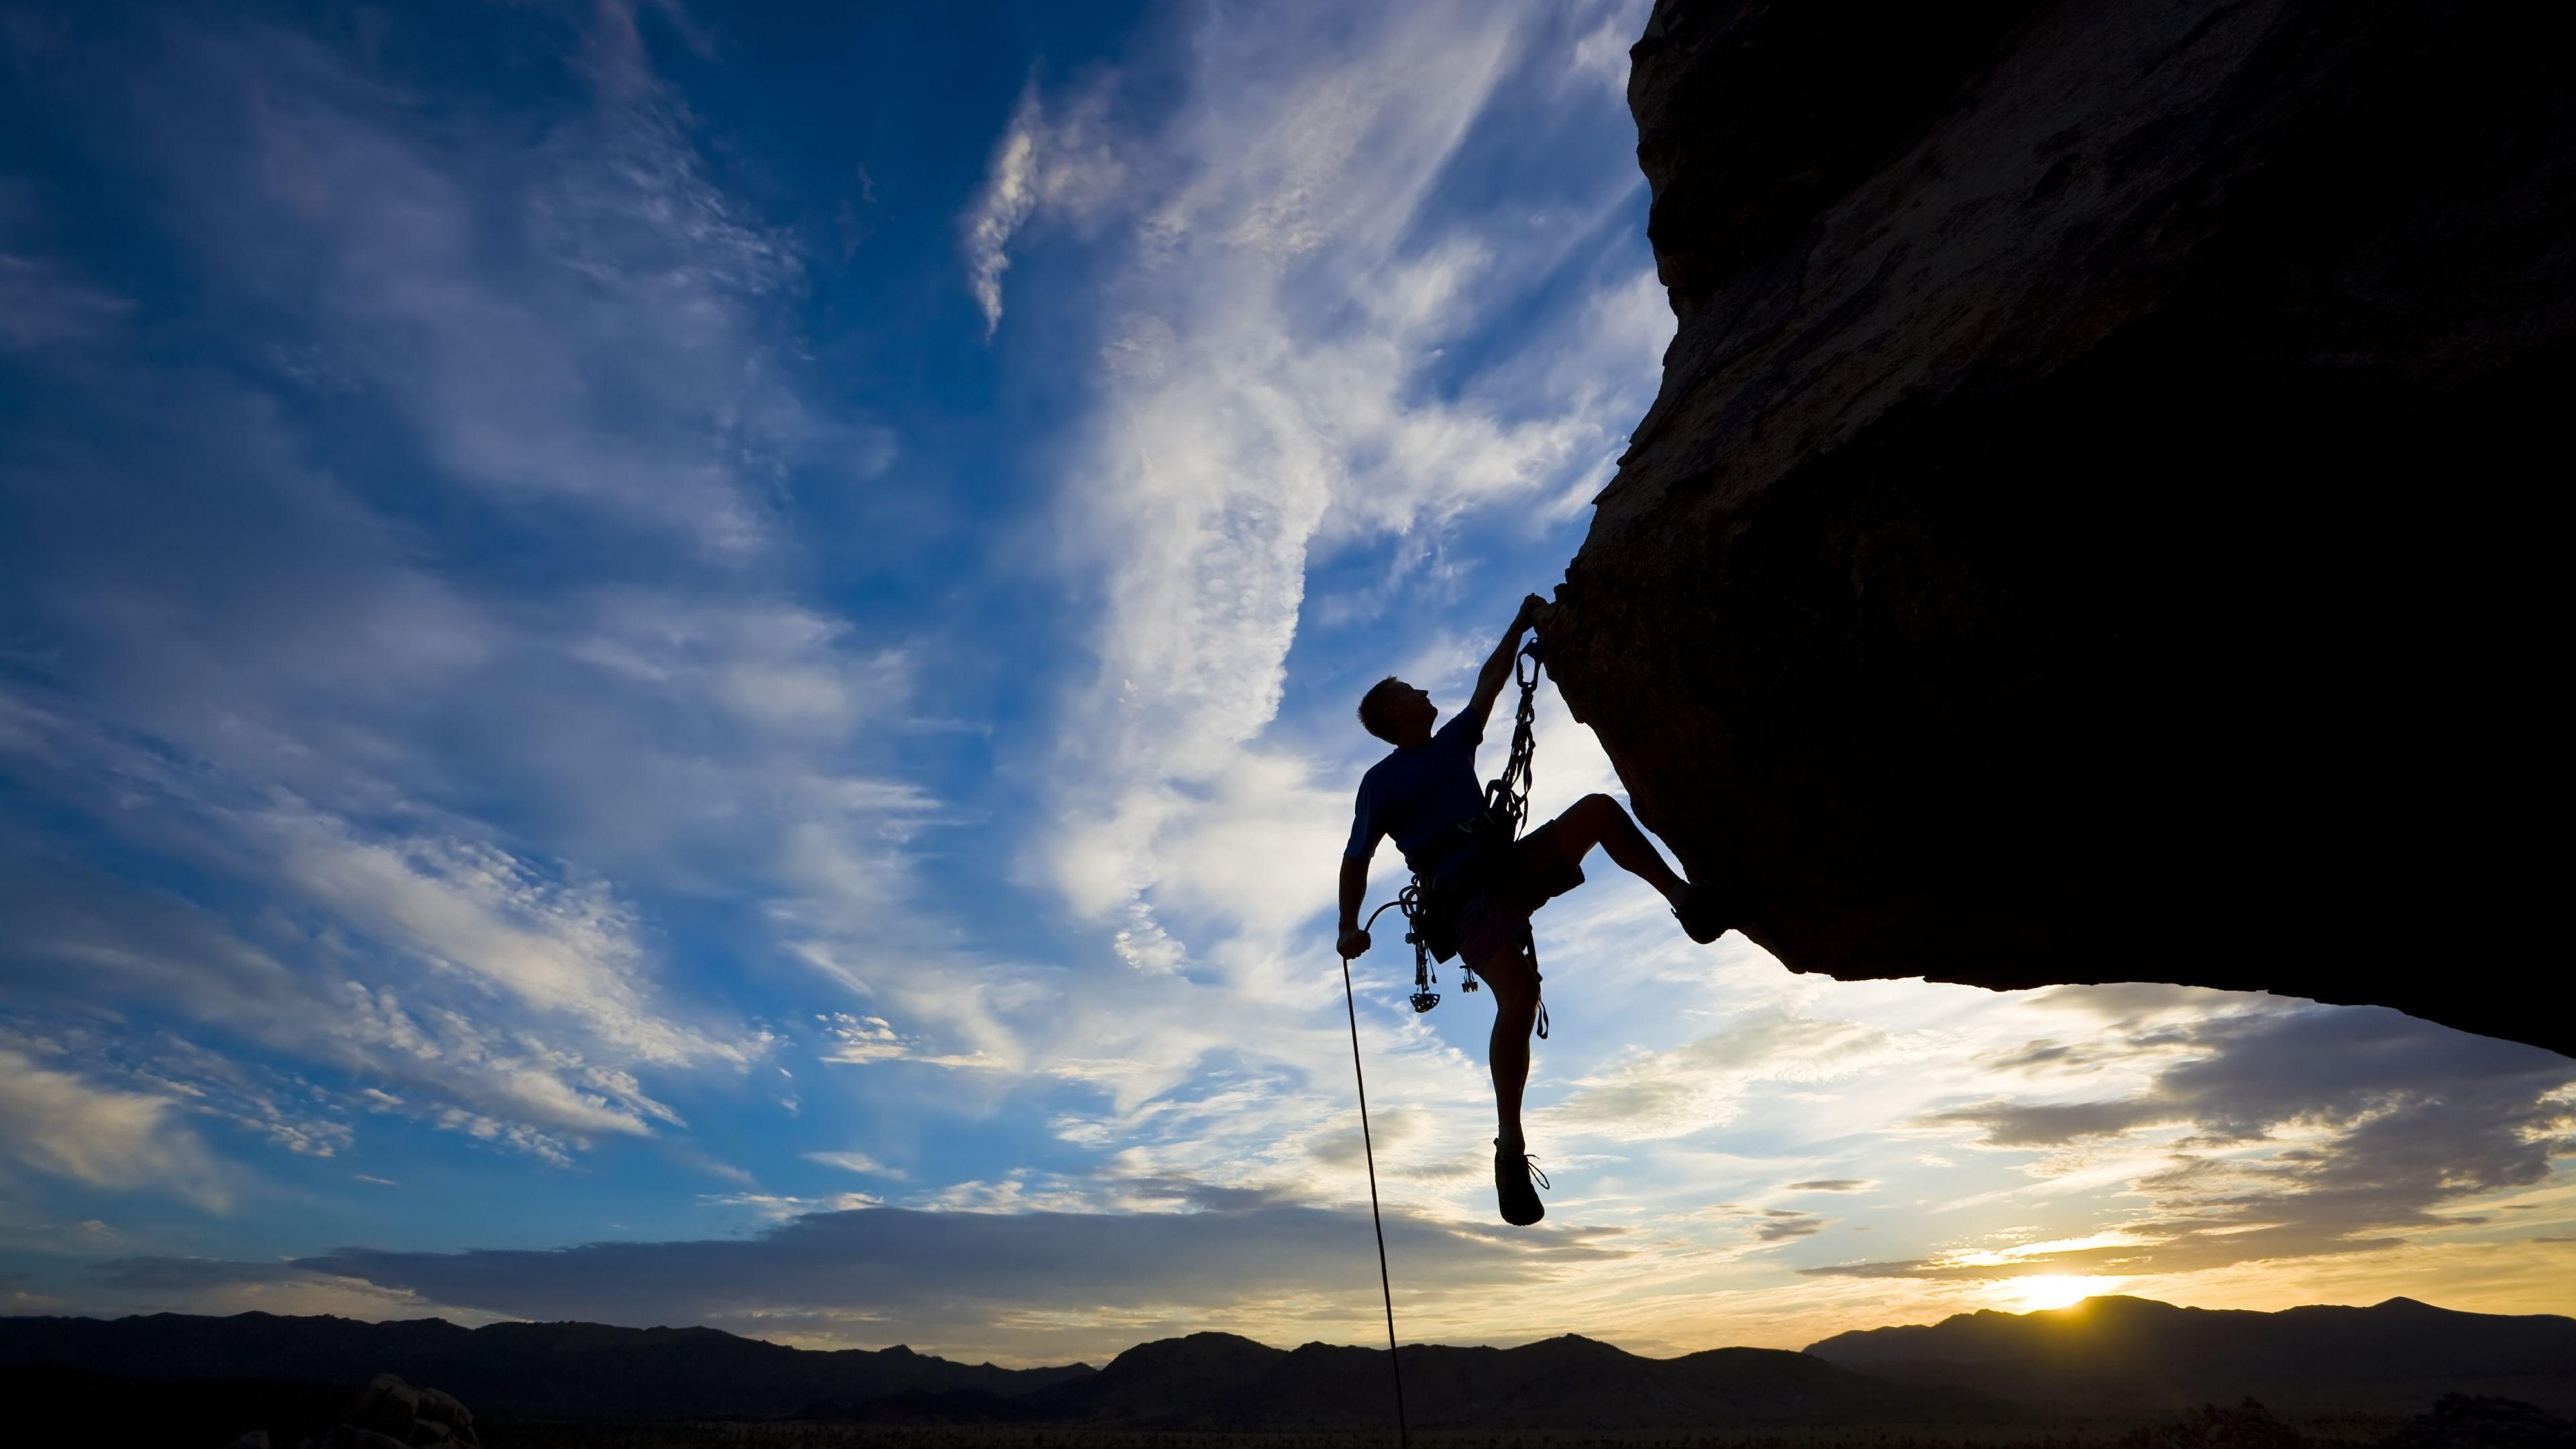 Download Wallpapers 3840x2160 Climber, Extreme, Silhouette